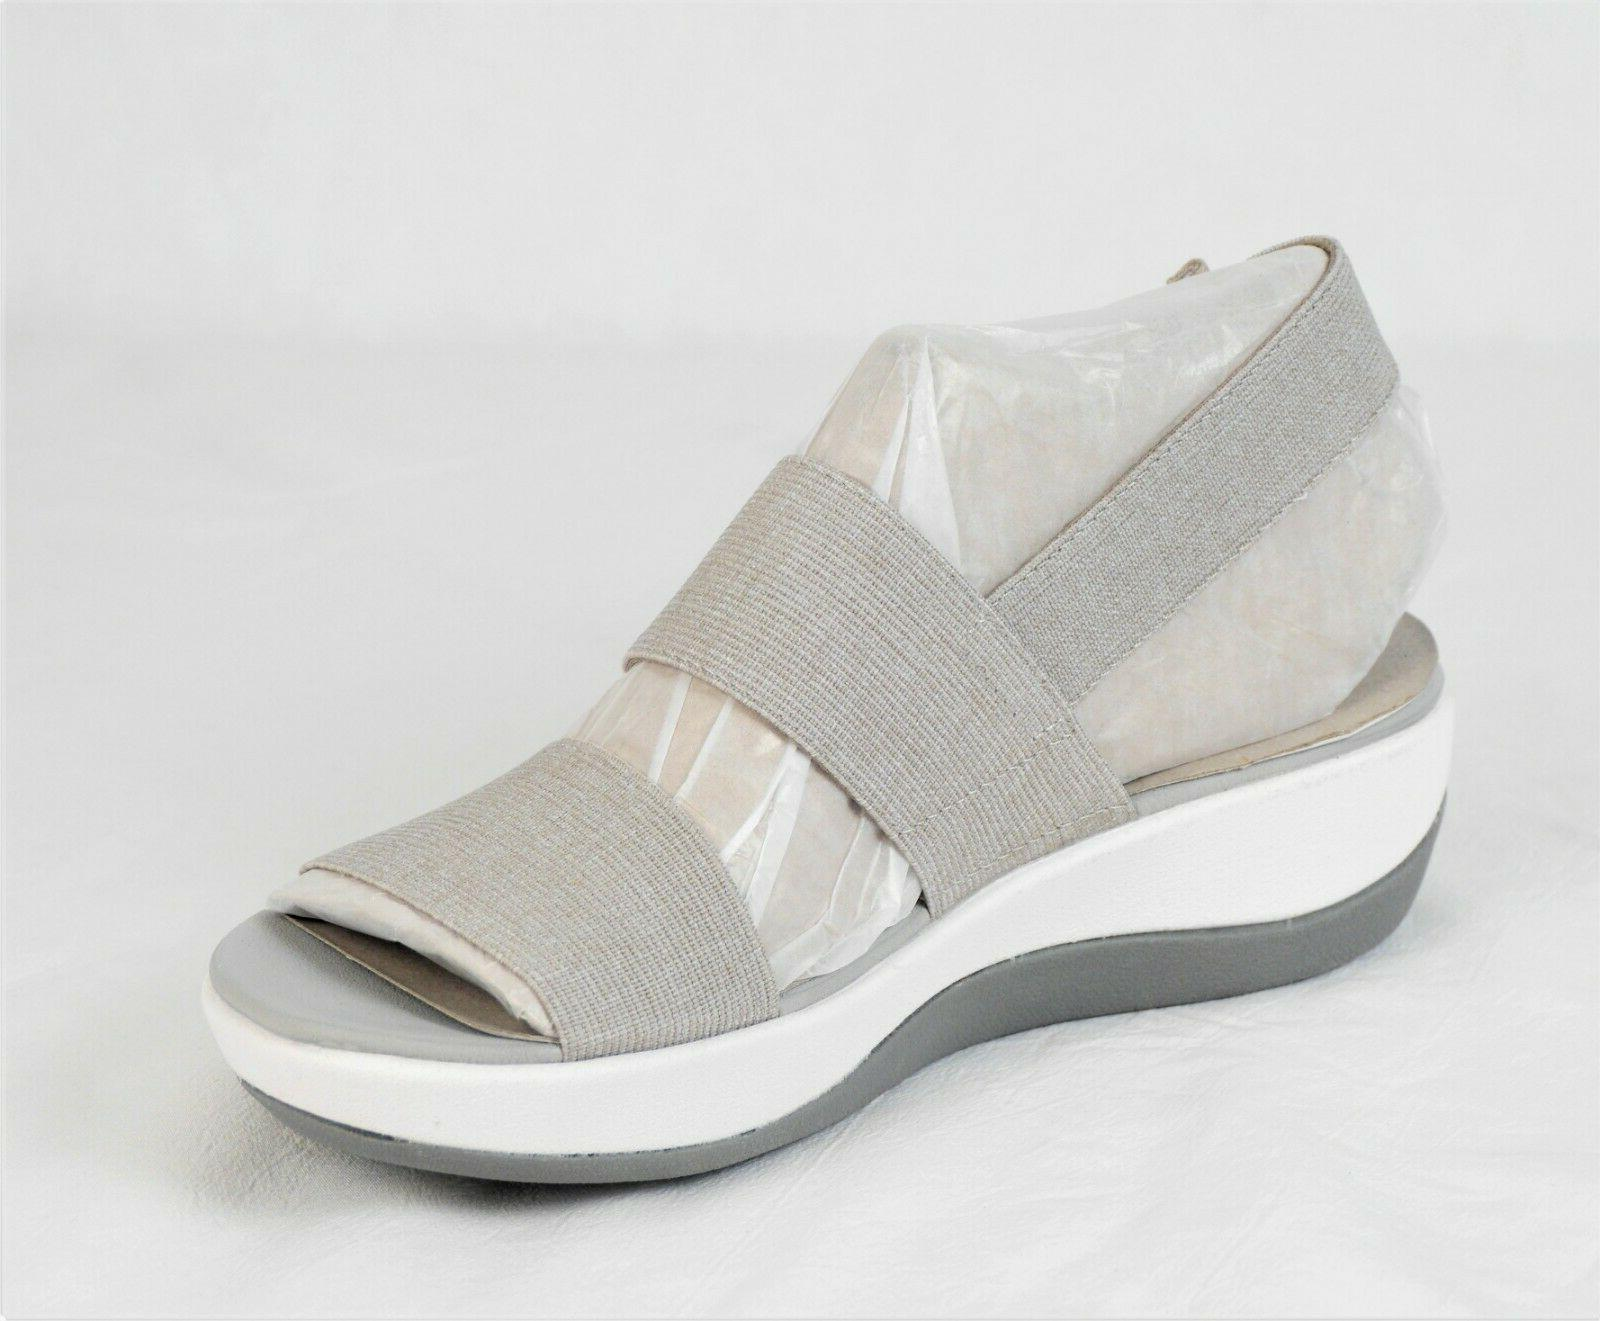 Cloudsteppers CLARKS Wedge Sand NEW